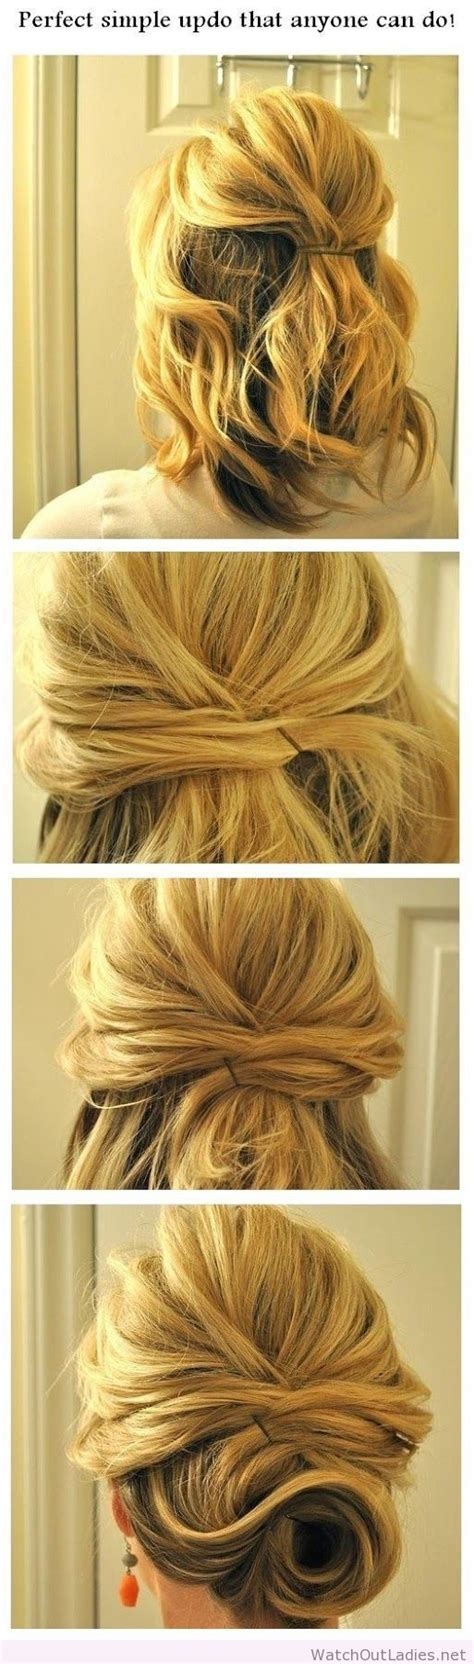 Perfect simple updo that anyone can do at home   hairstyles!   Pinterest   Simple updo, Updo and